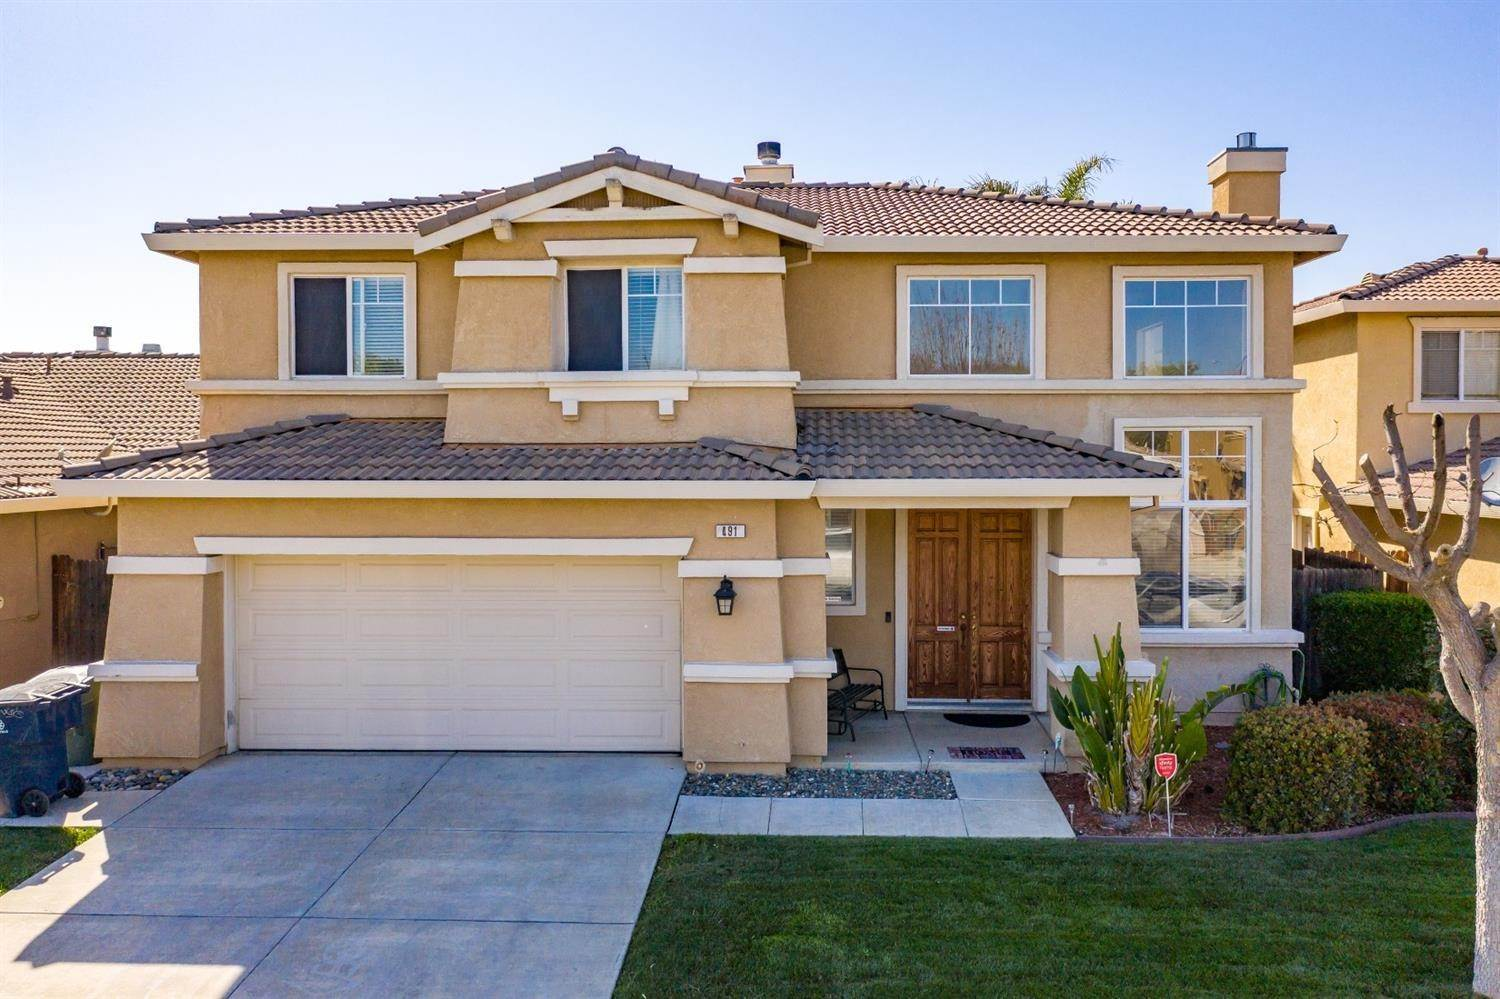 Single Family Homes for Active at 491 Clarence Bromell Street Tracy, California 95377 United States